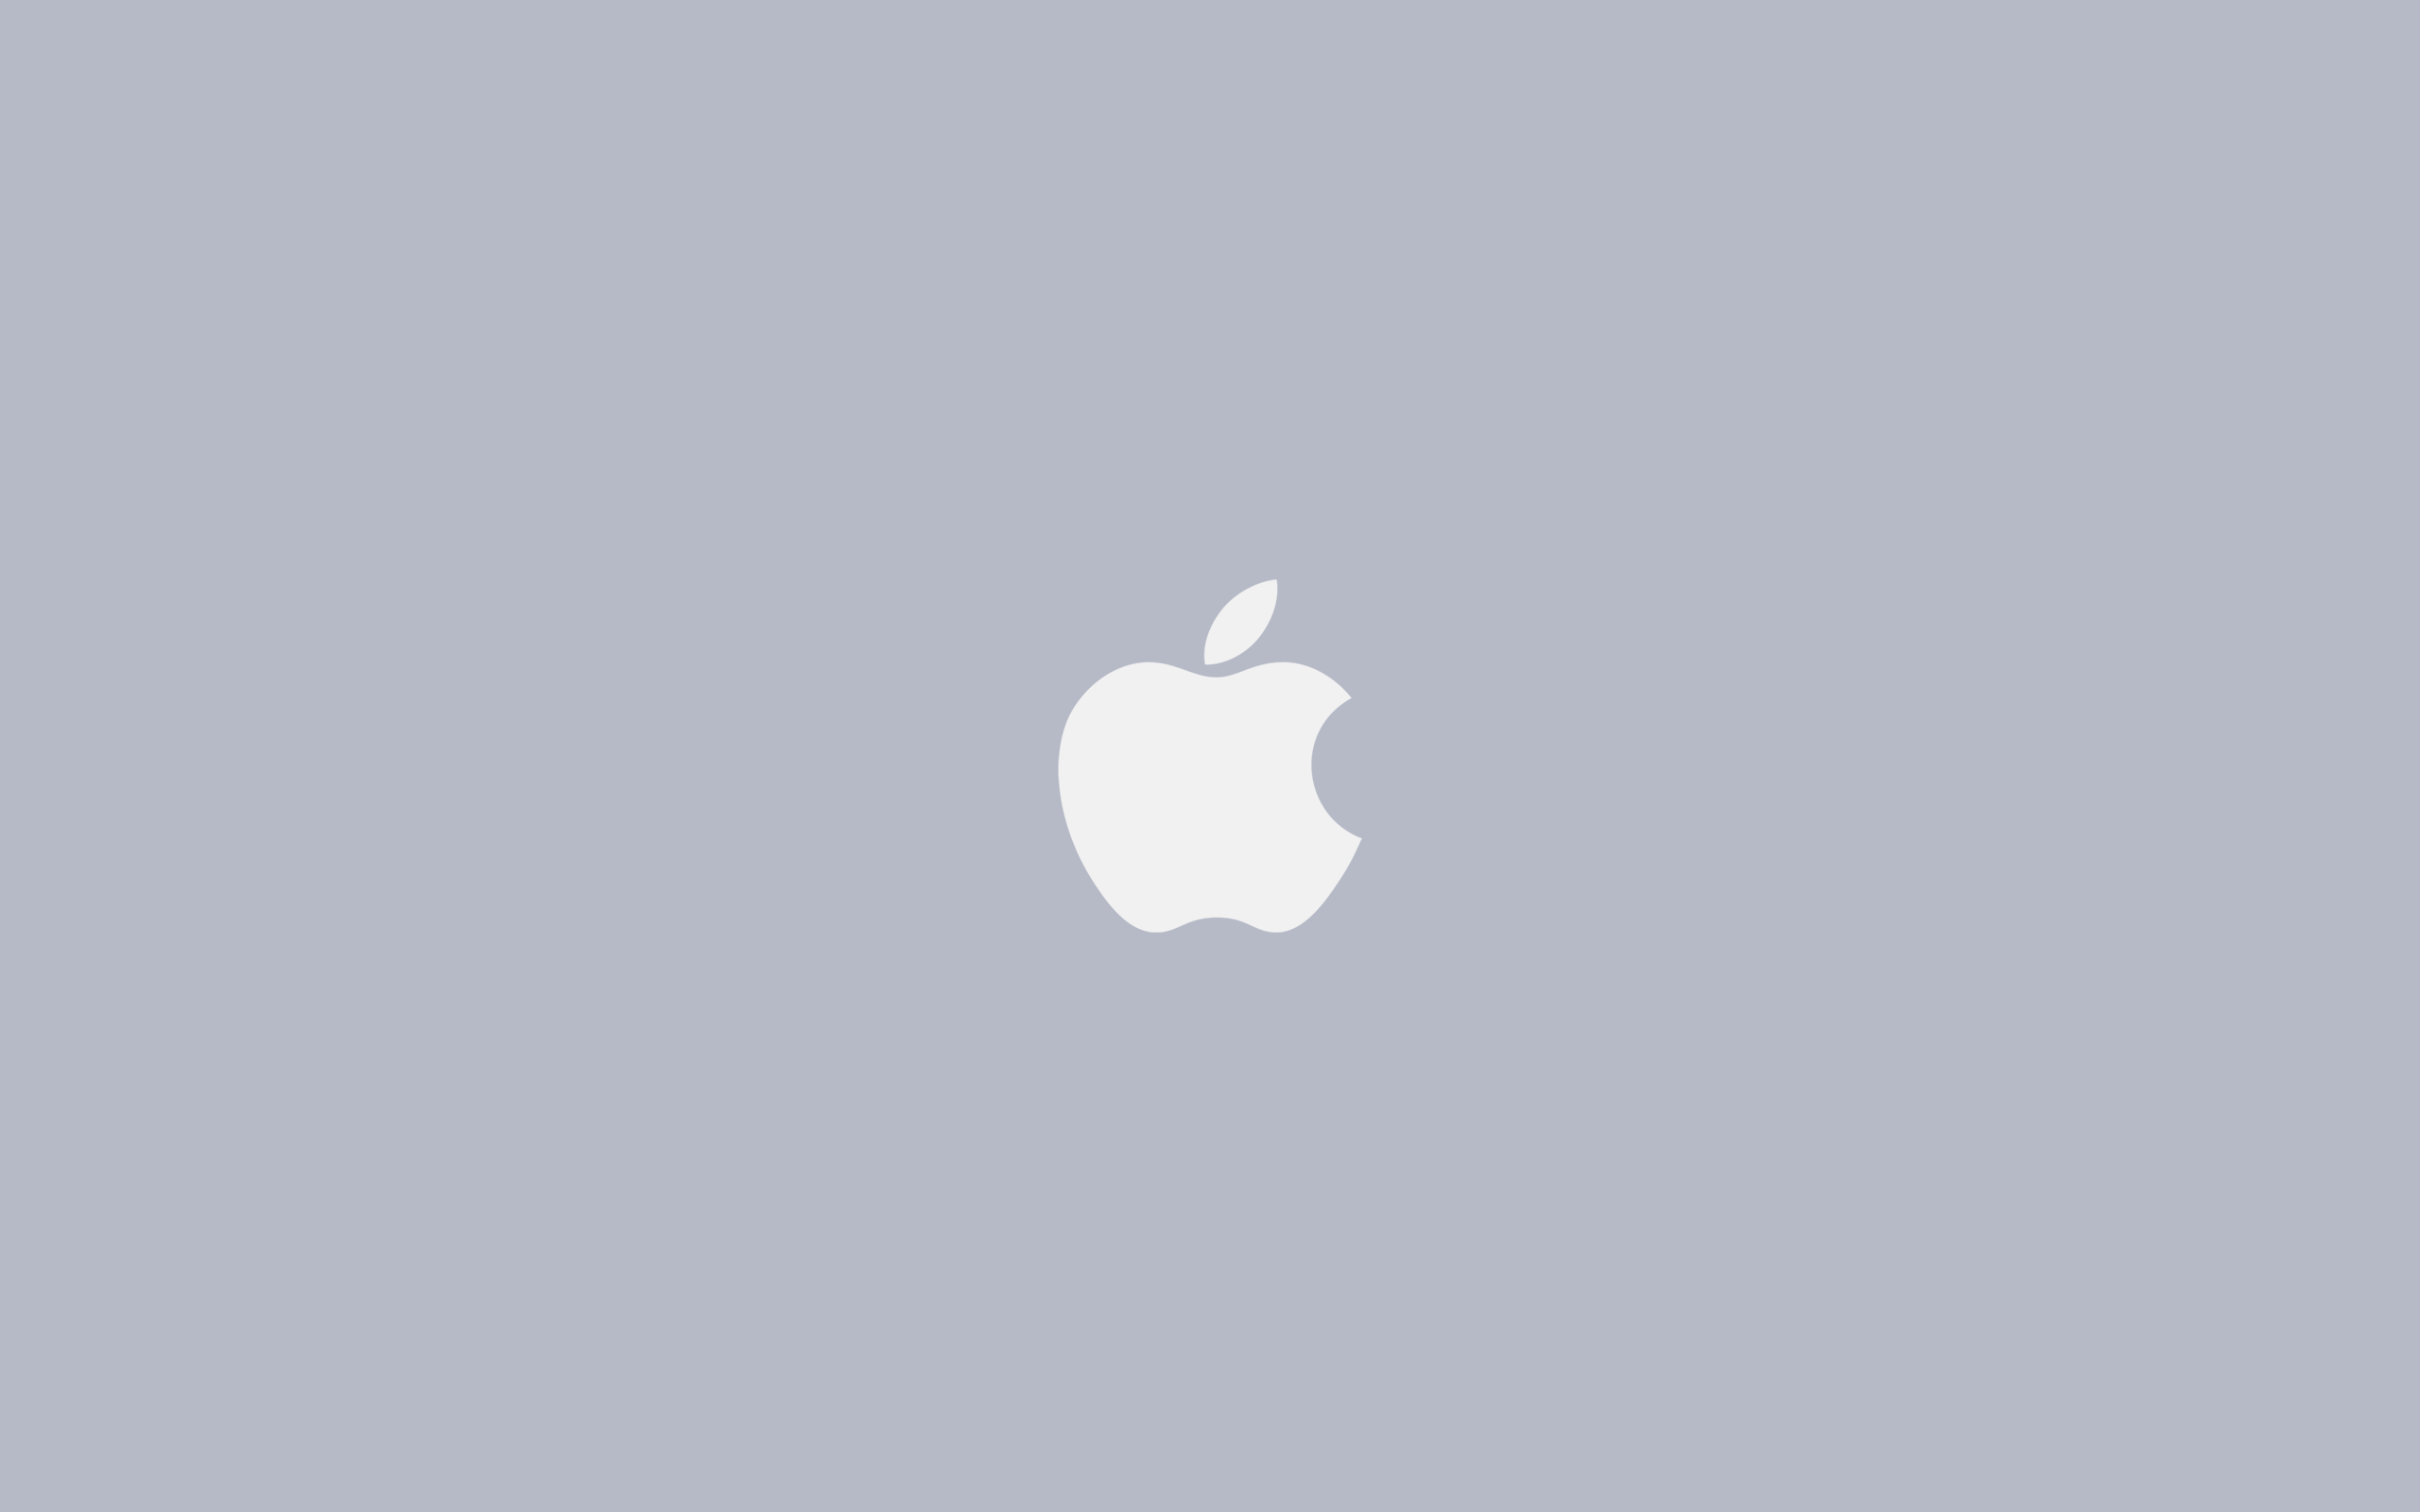 Apple Logo Wallpapers Group (93+)